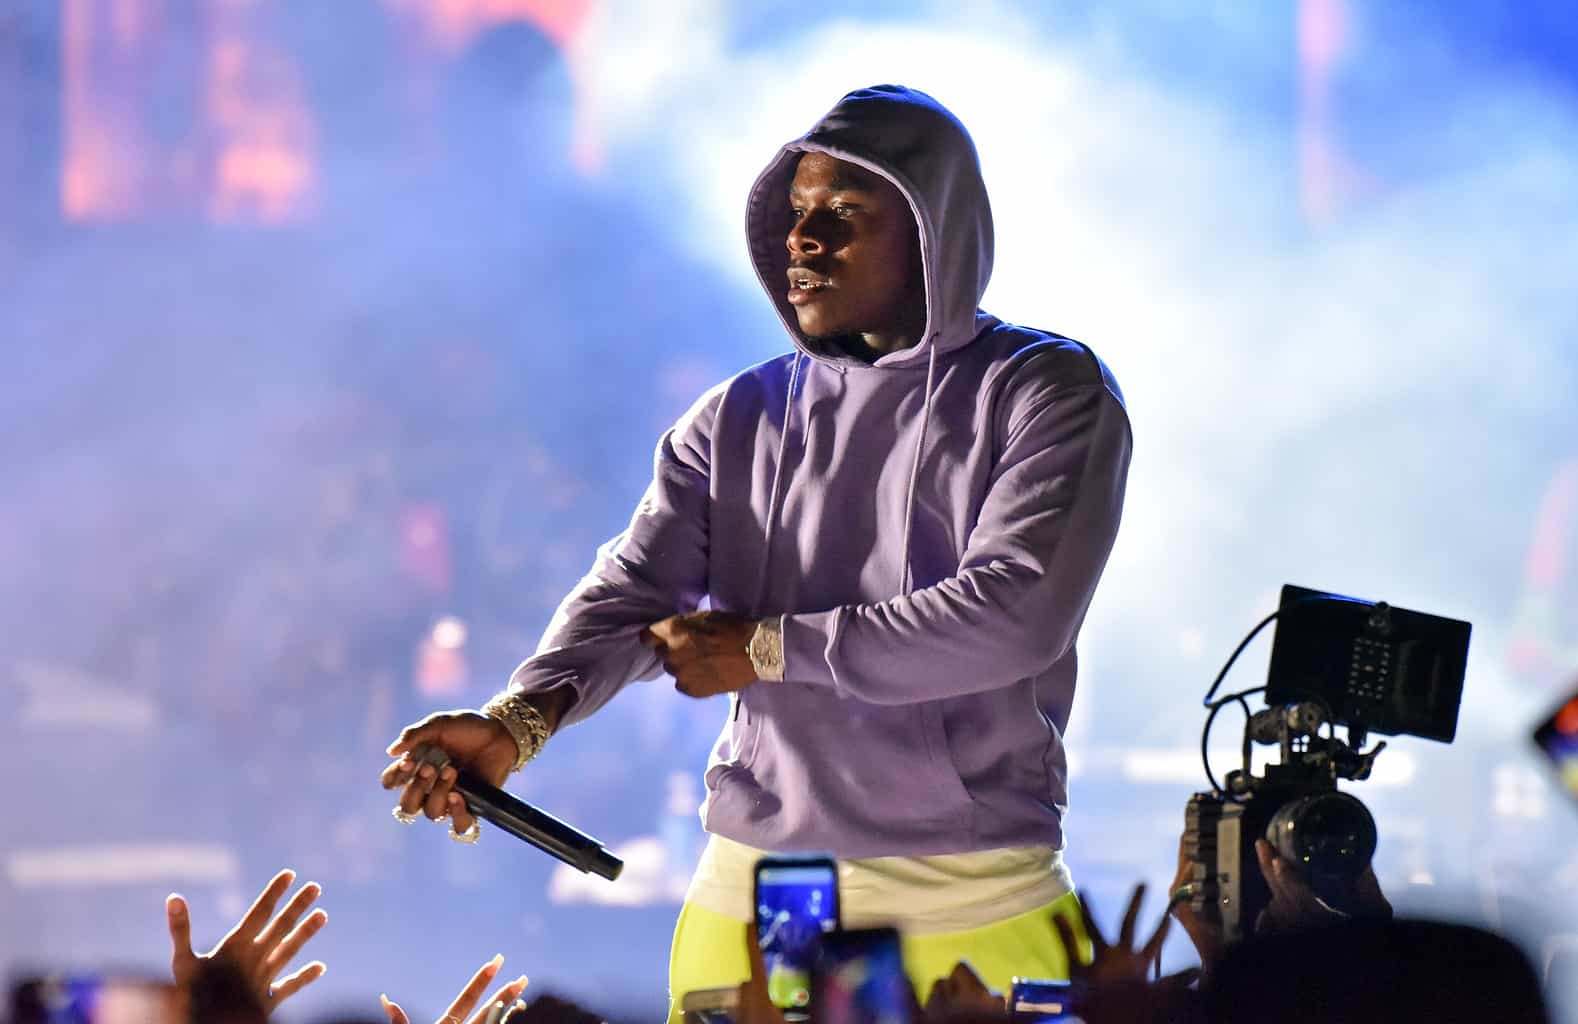 dababy issues apology after video surfaces of rapper striking woman